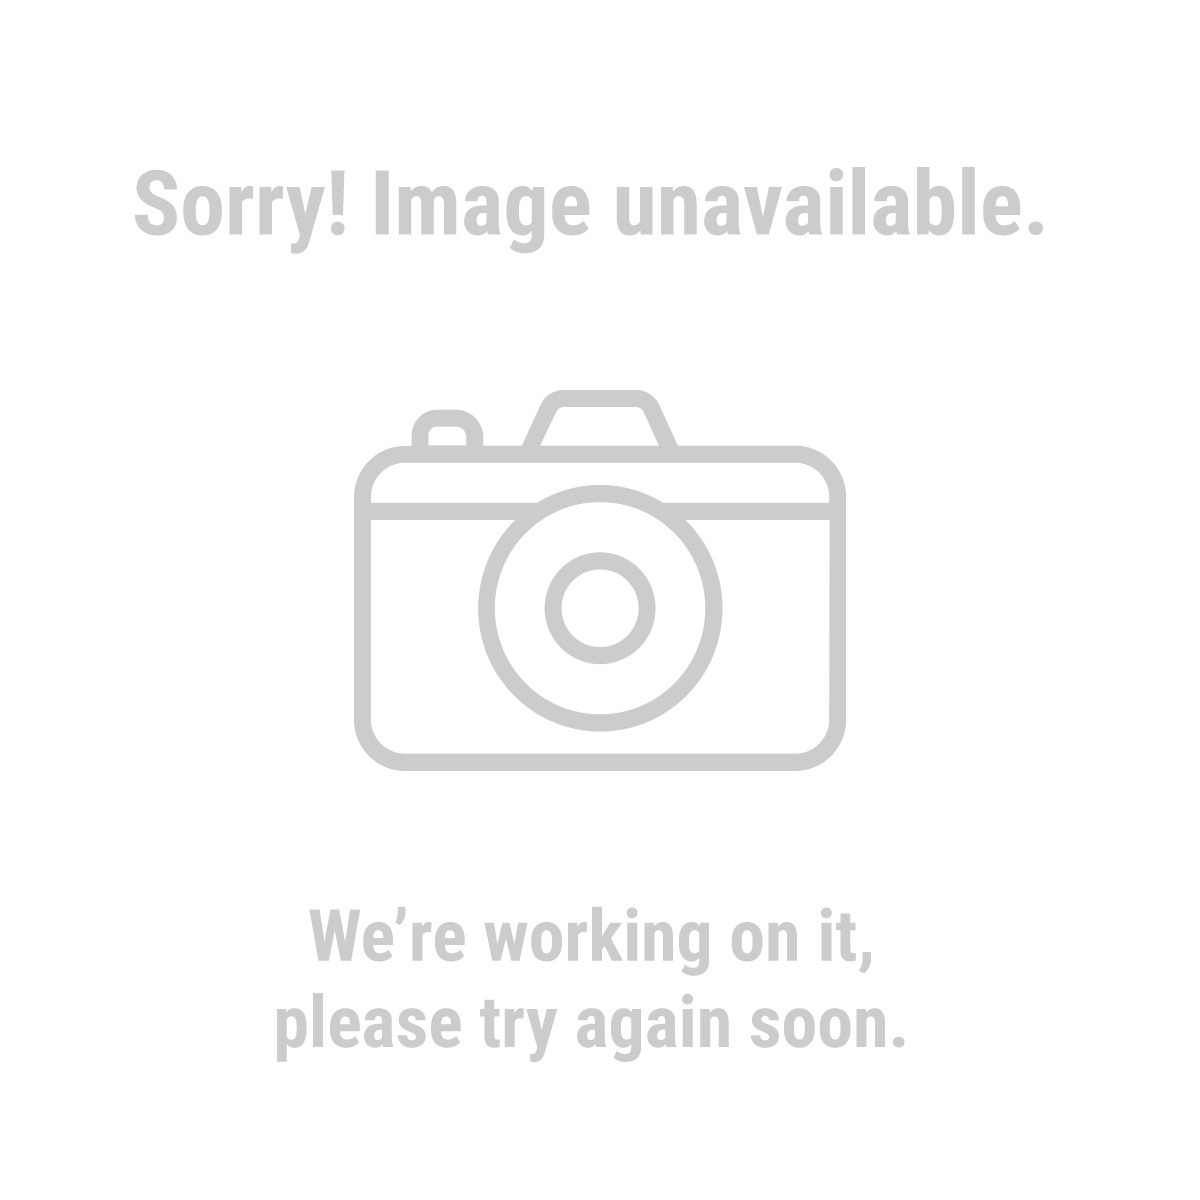 Western Safety 66823 Tinted Yellow Lens Safety Glasses